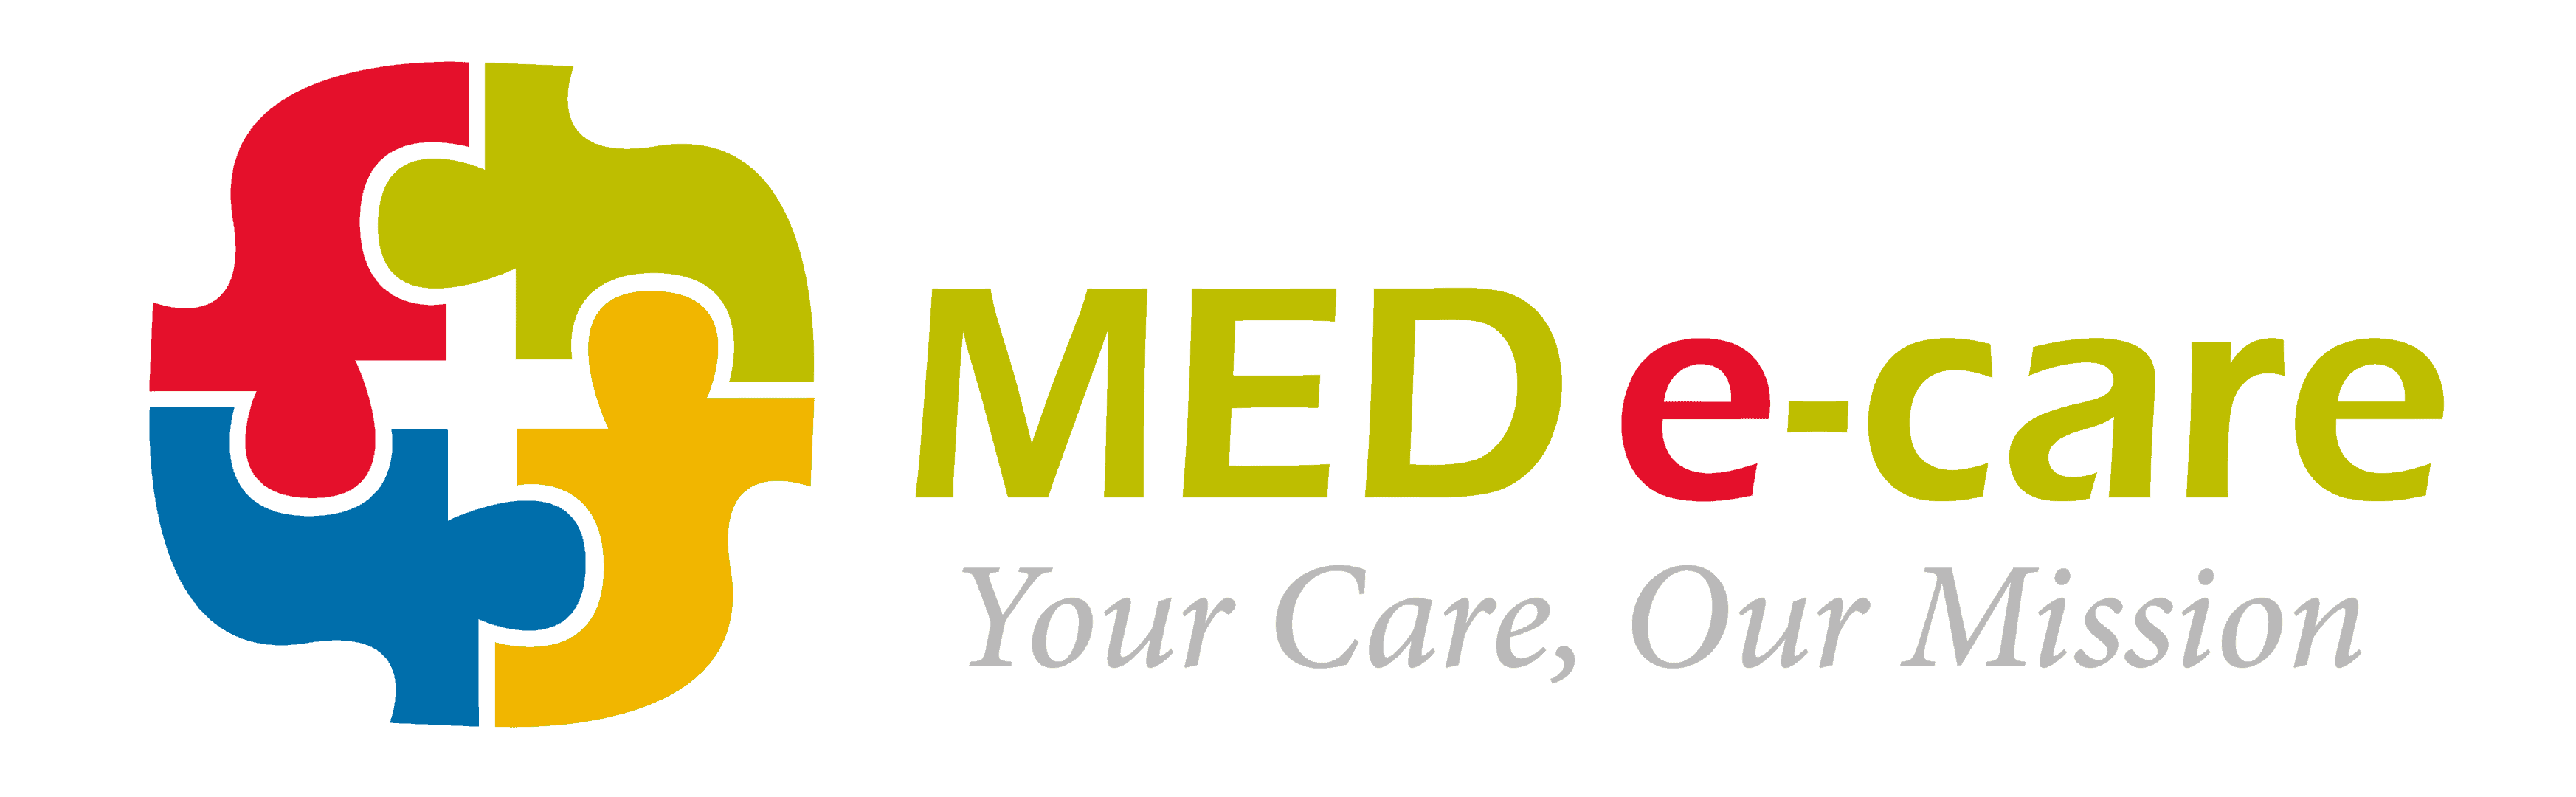 medecare-logo-full-logo-colour-01